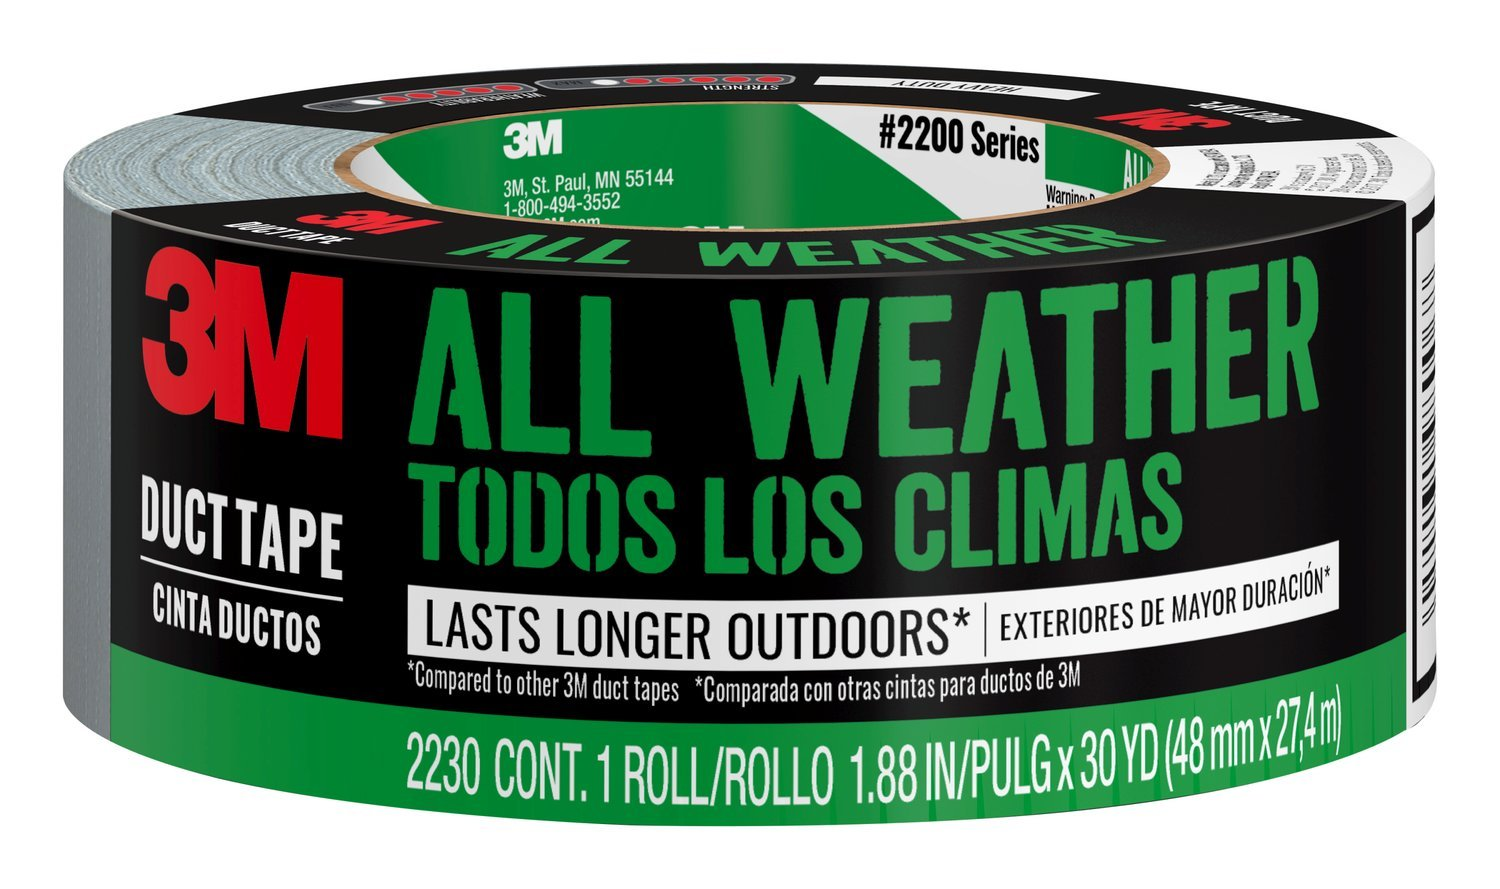 3M All Weather Duct Tape, 2230, 1.88 Inches by 30 Yards